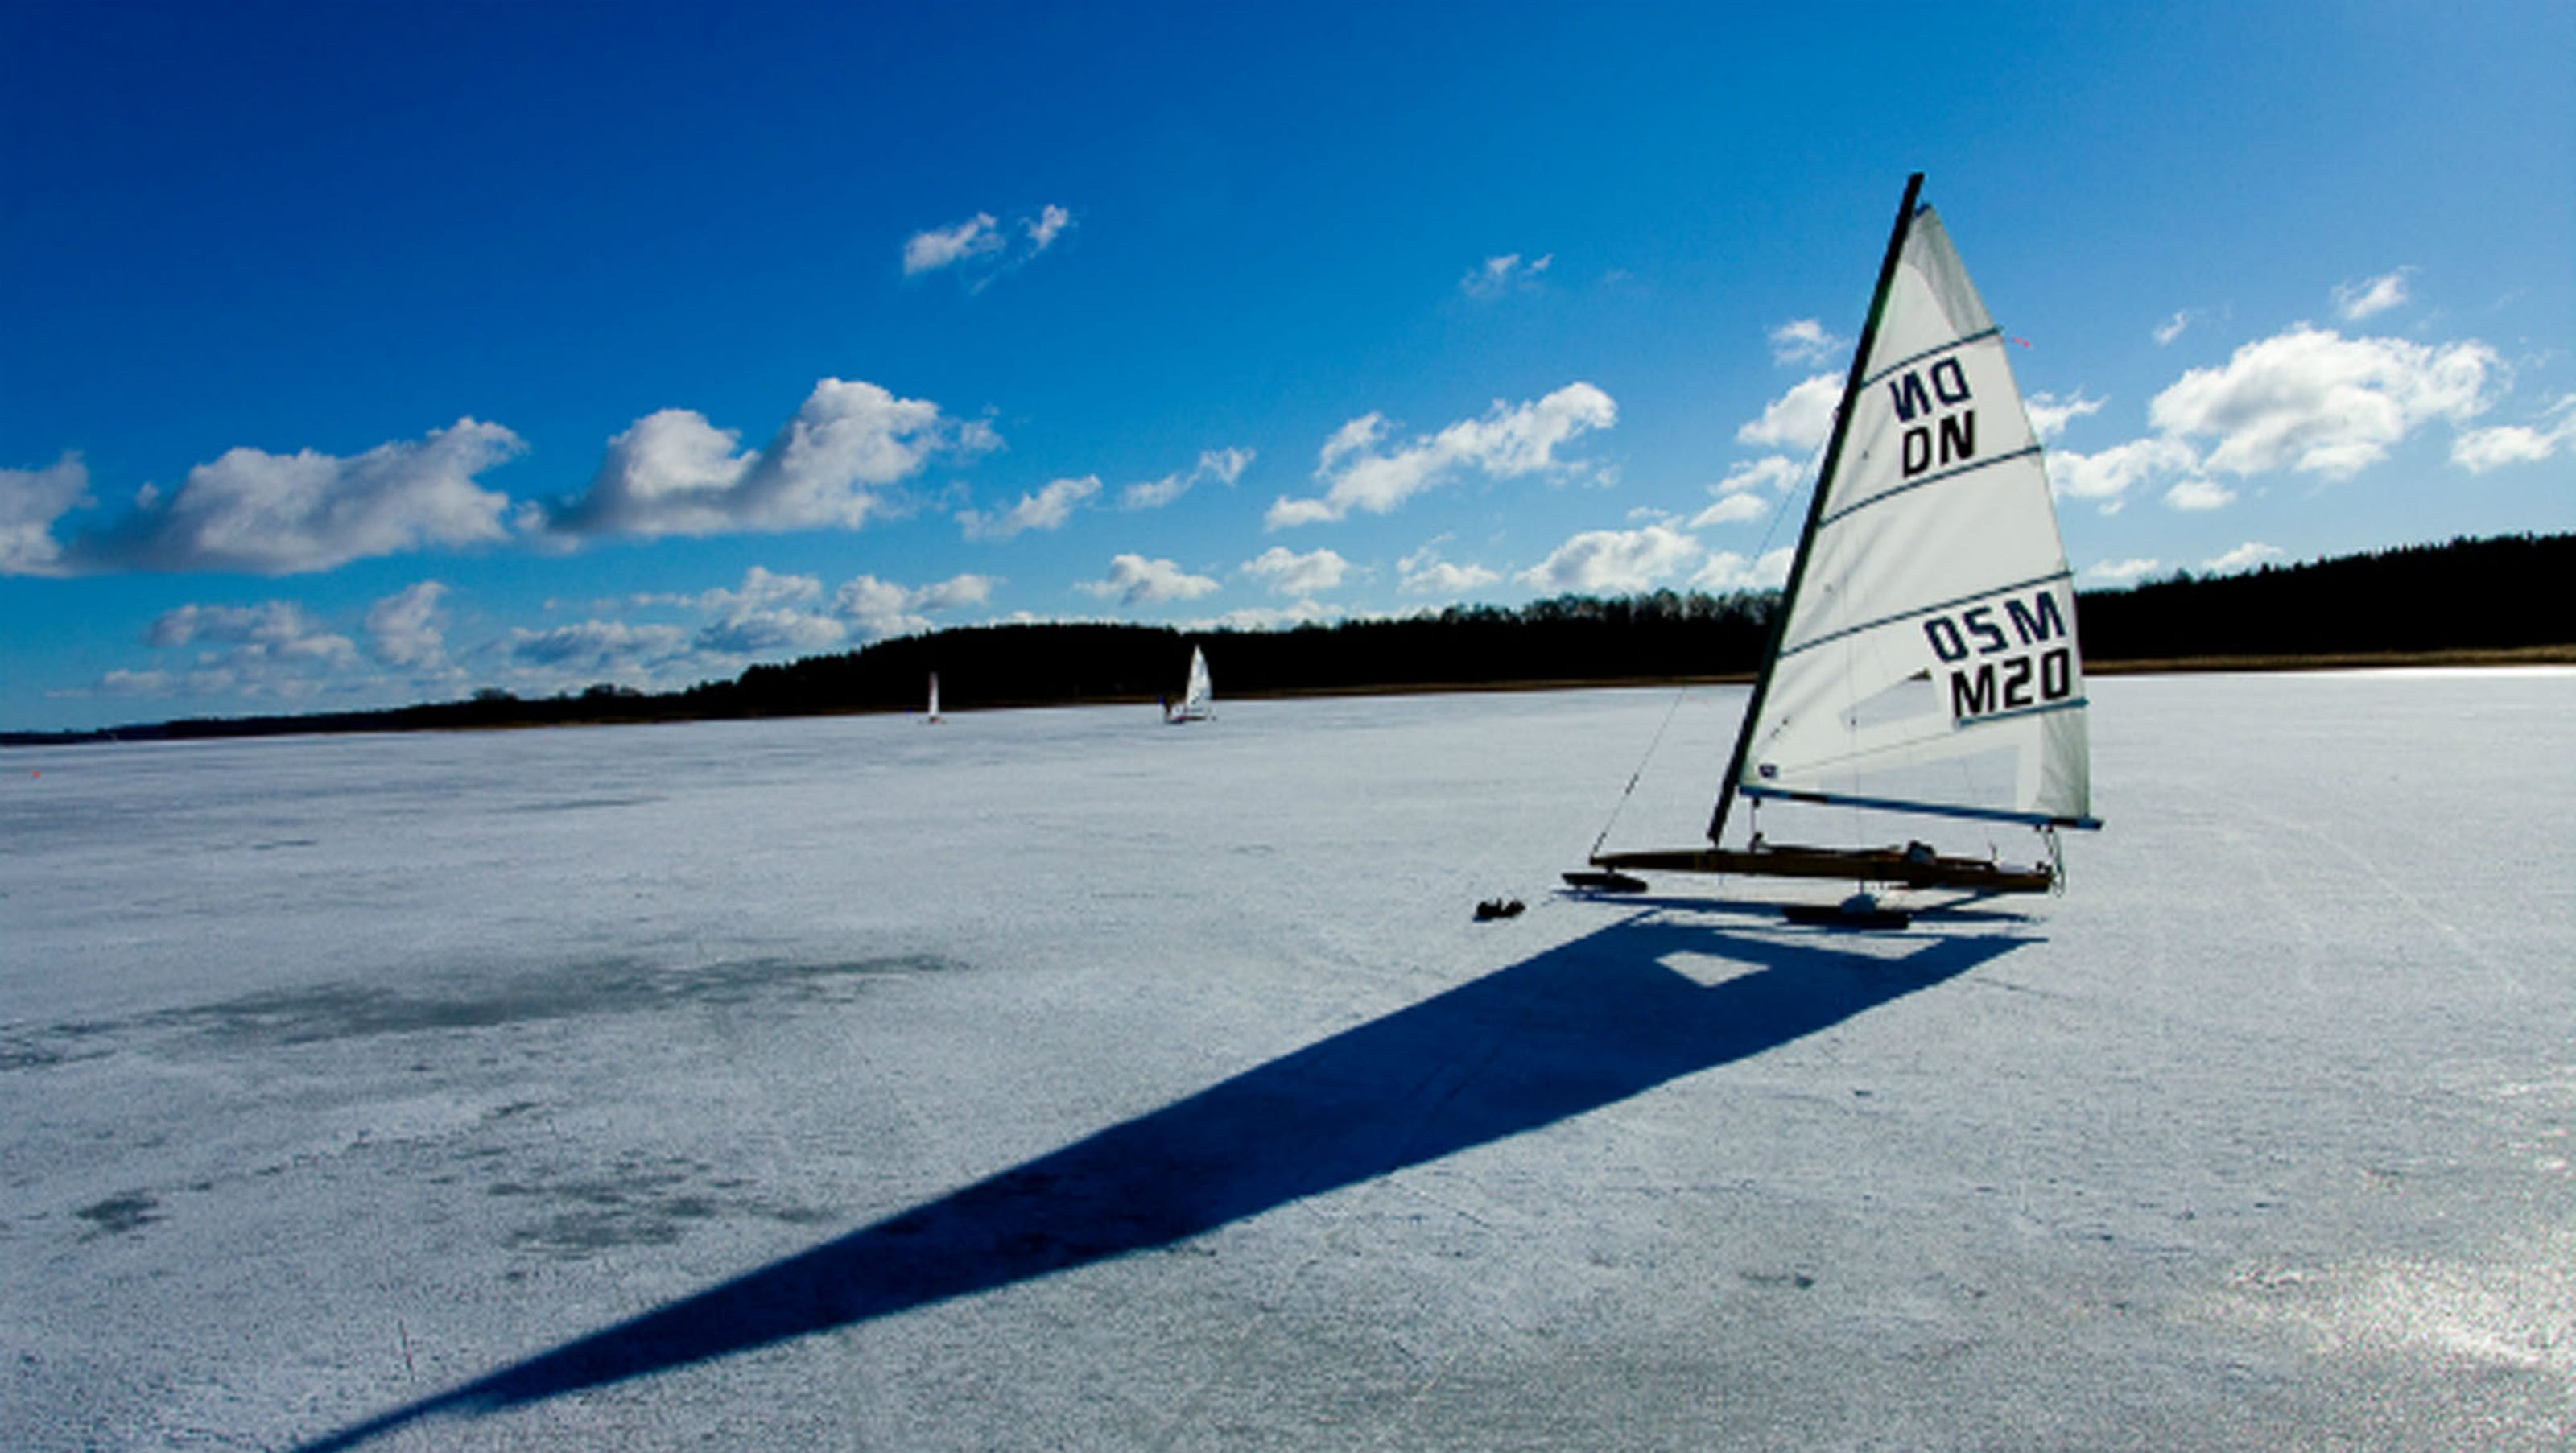 Alternative Forms Of Winter Boat >> 10 New Snow Sports To Try This Winter